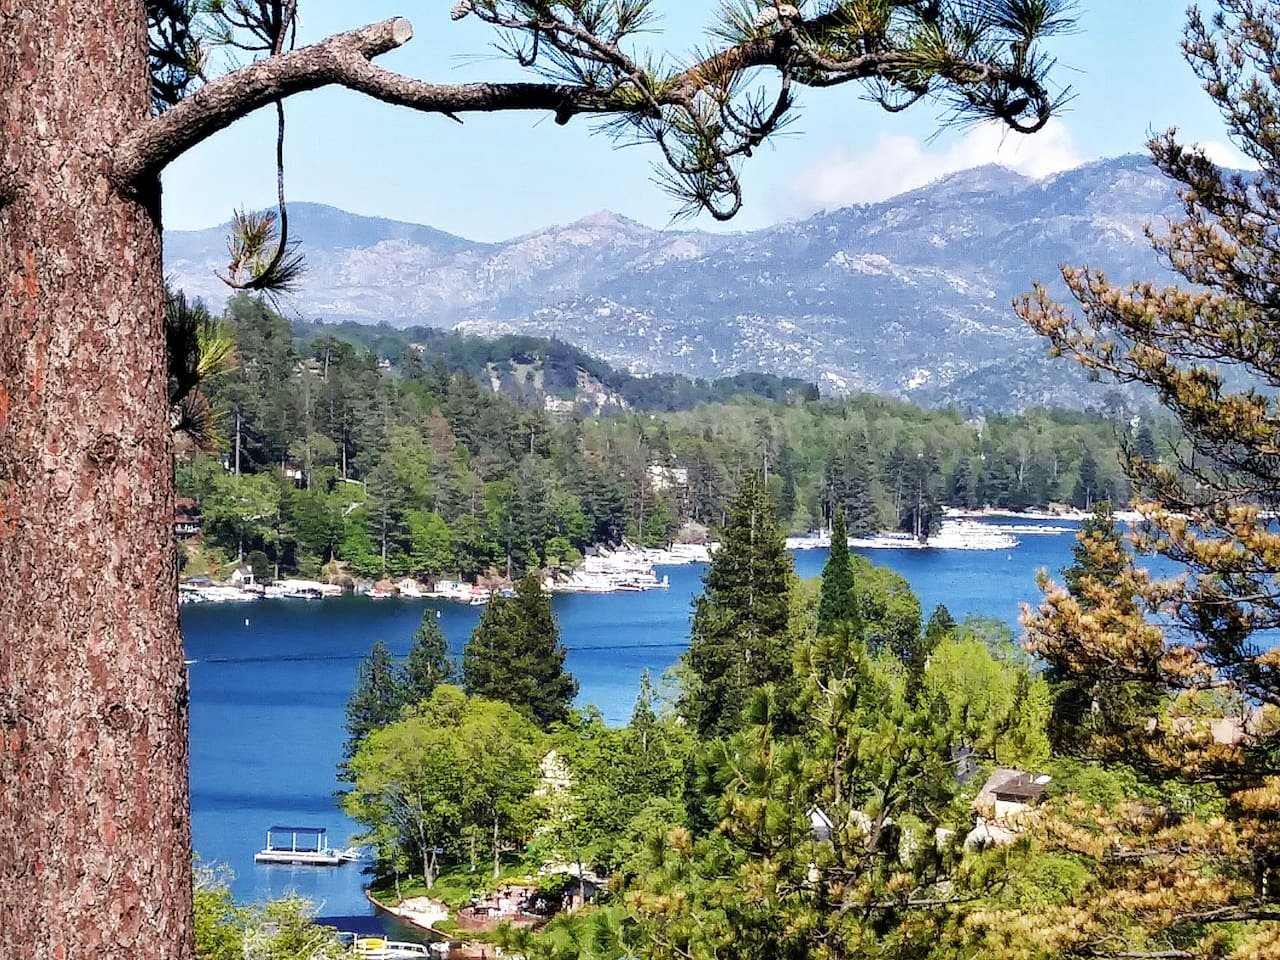 Front row seat view of beautiful Lake Arrowhead from our front deck. Watch all the activity. You can see our dock from the deck on the left side of the picture.